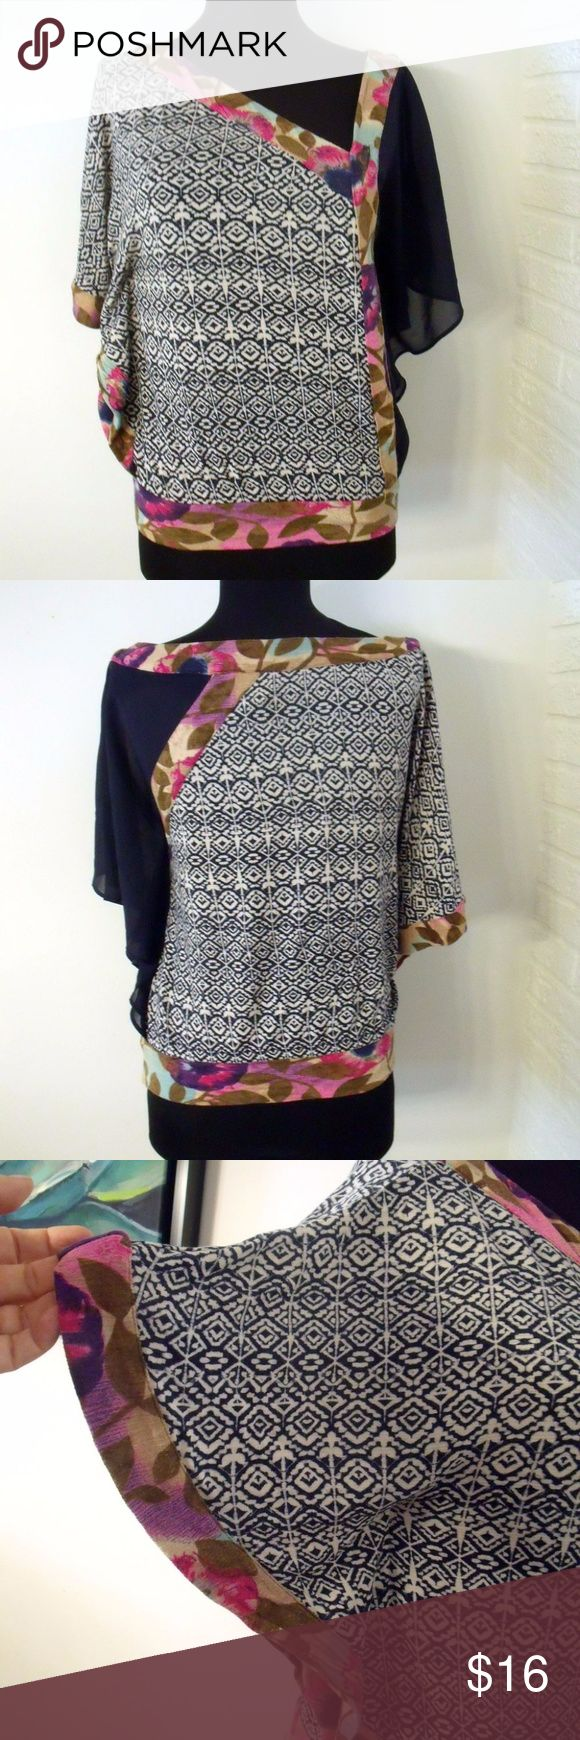 """Anthropologie Vanessa Virginia Knit Print Top Anthropologie Vanessa Virginia Knit Multi Print Blouse – size Extra Small  The unique top features an off centered V Neck with one sleeve of navy silk, a navy and cream knit pattern, and a floral pattern for contrasting trim. Batwing sleeve  PLEASE MEASURE FOR SIZE  Measurements: 19.5"""" from underarm to underarm 21"""" from the top of the shoulder to the bottom hem Anthropologie Tops"""